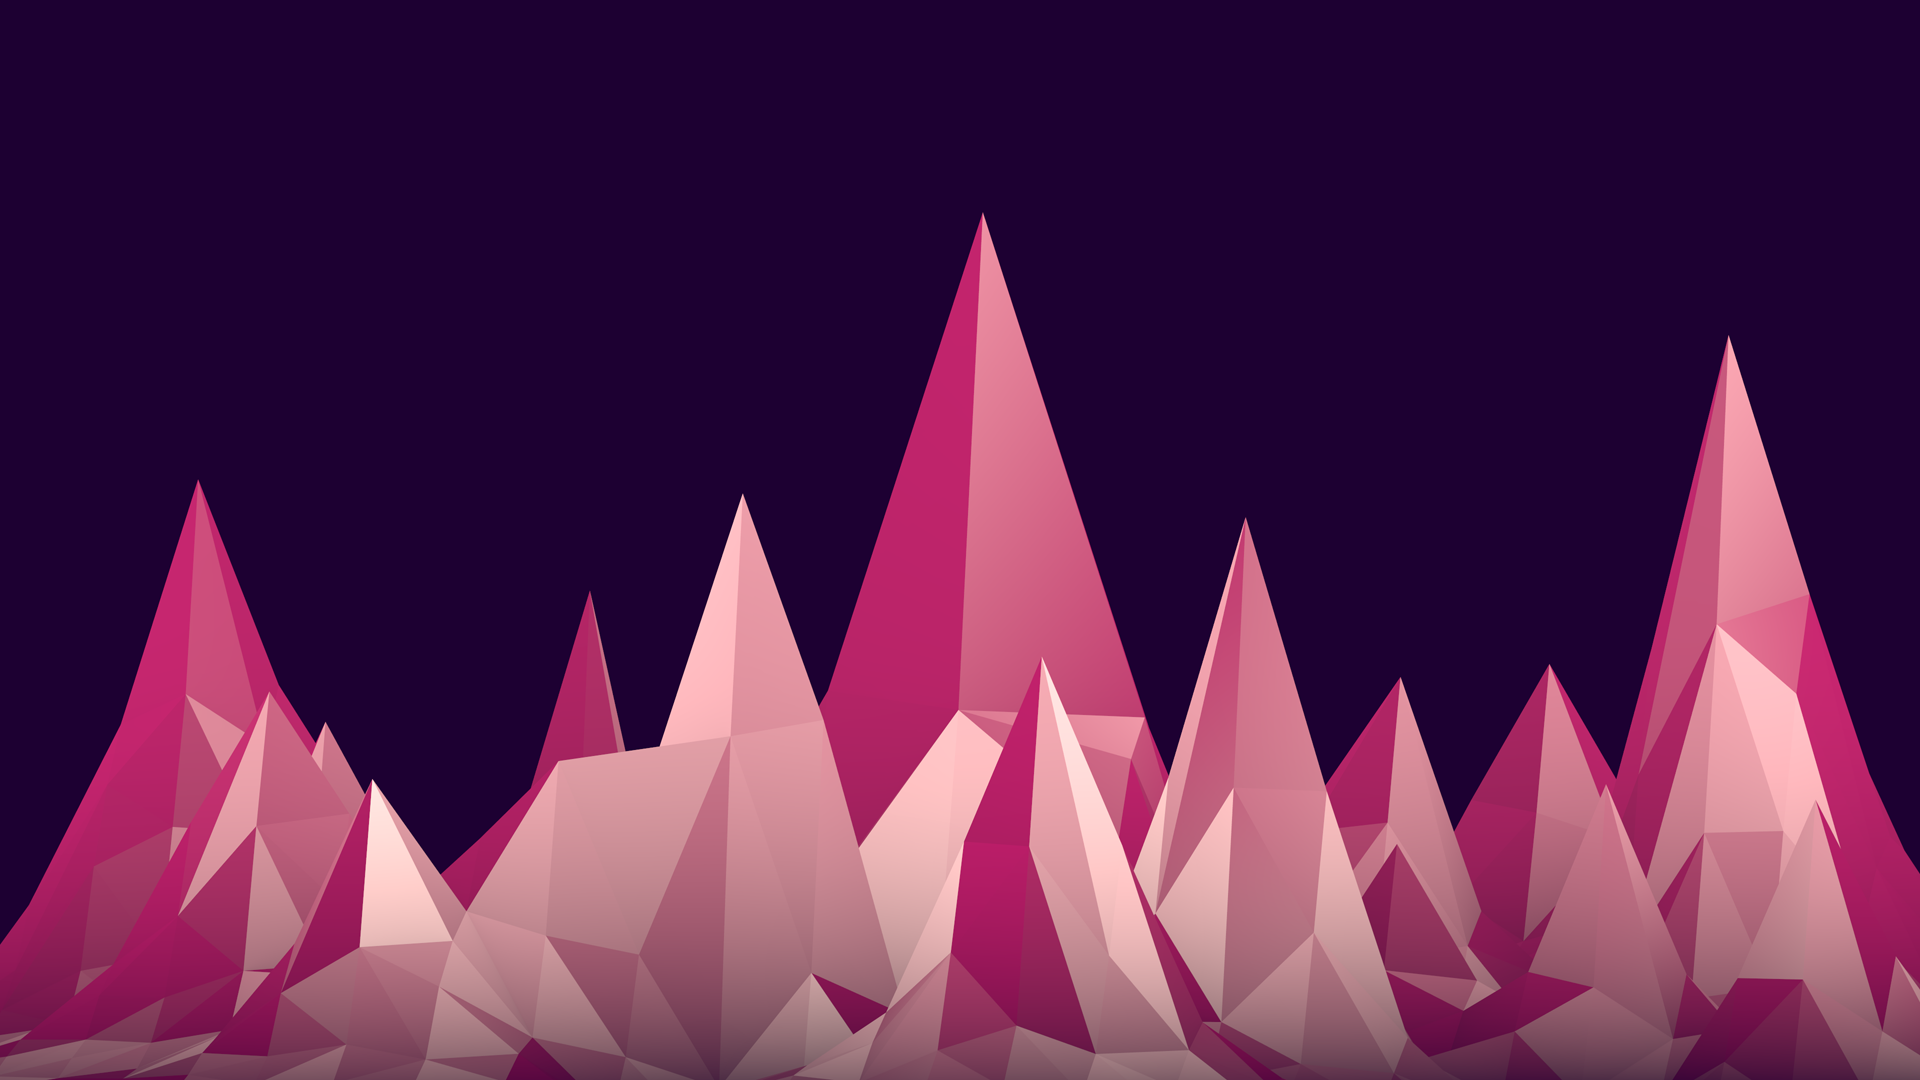 Simple Wallpaper Mountain Polygon - polygon-background-31608-32342-hd-wallpapers  Best Photo Reference_873412.jpg